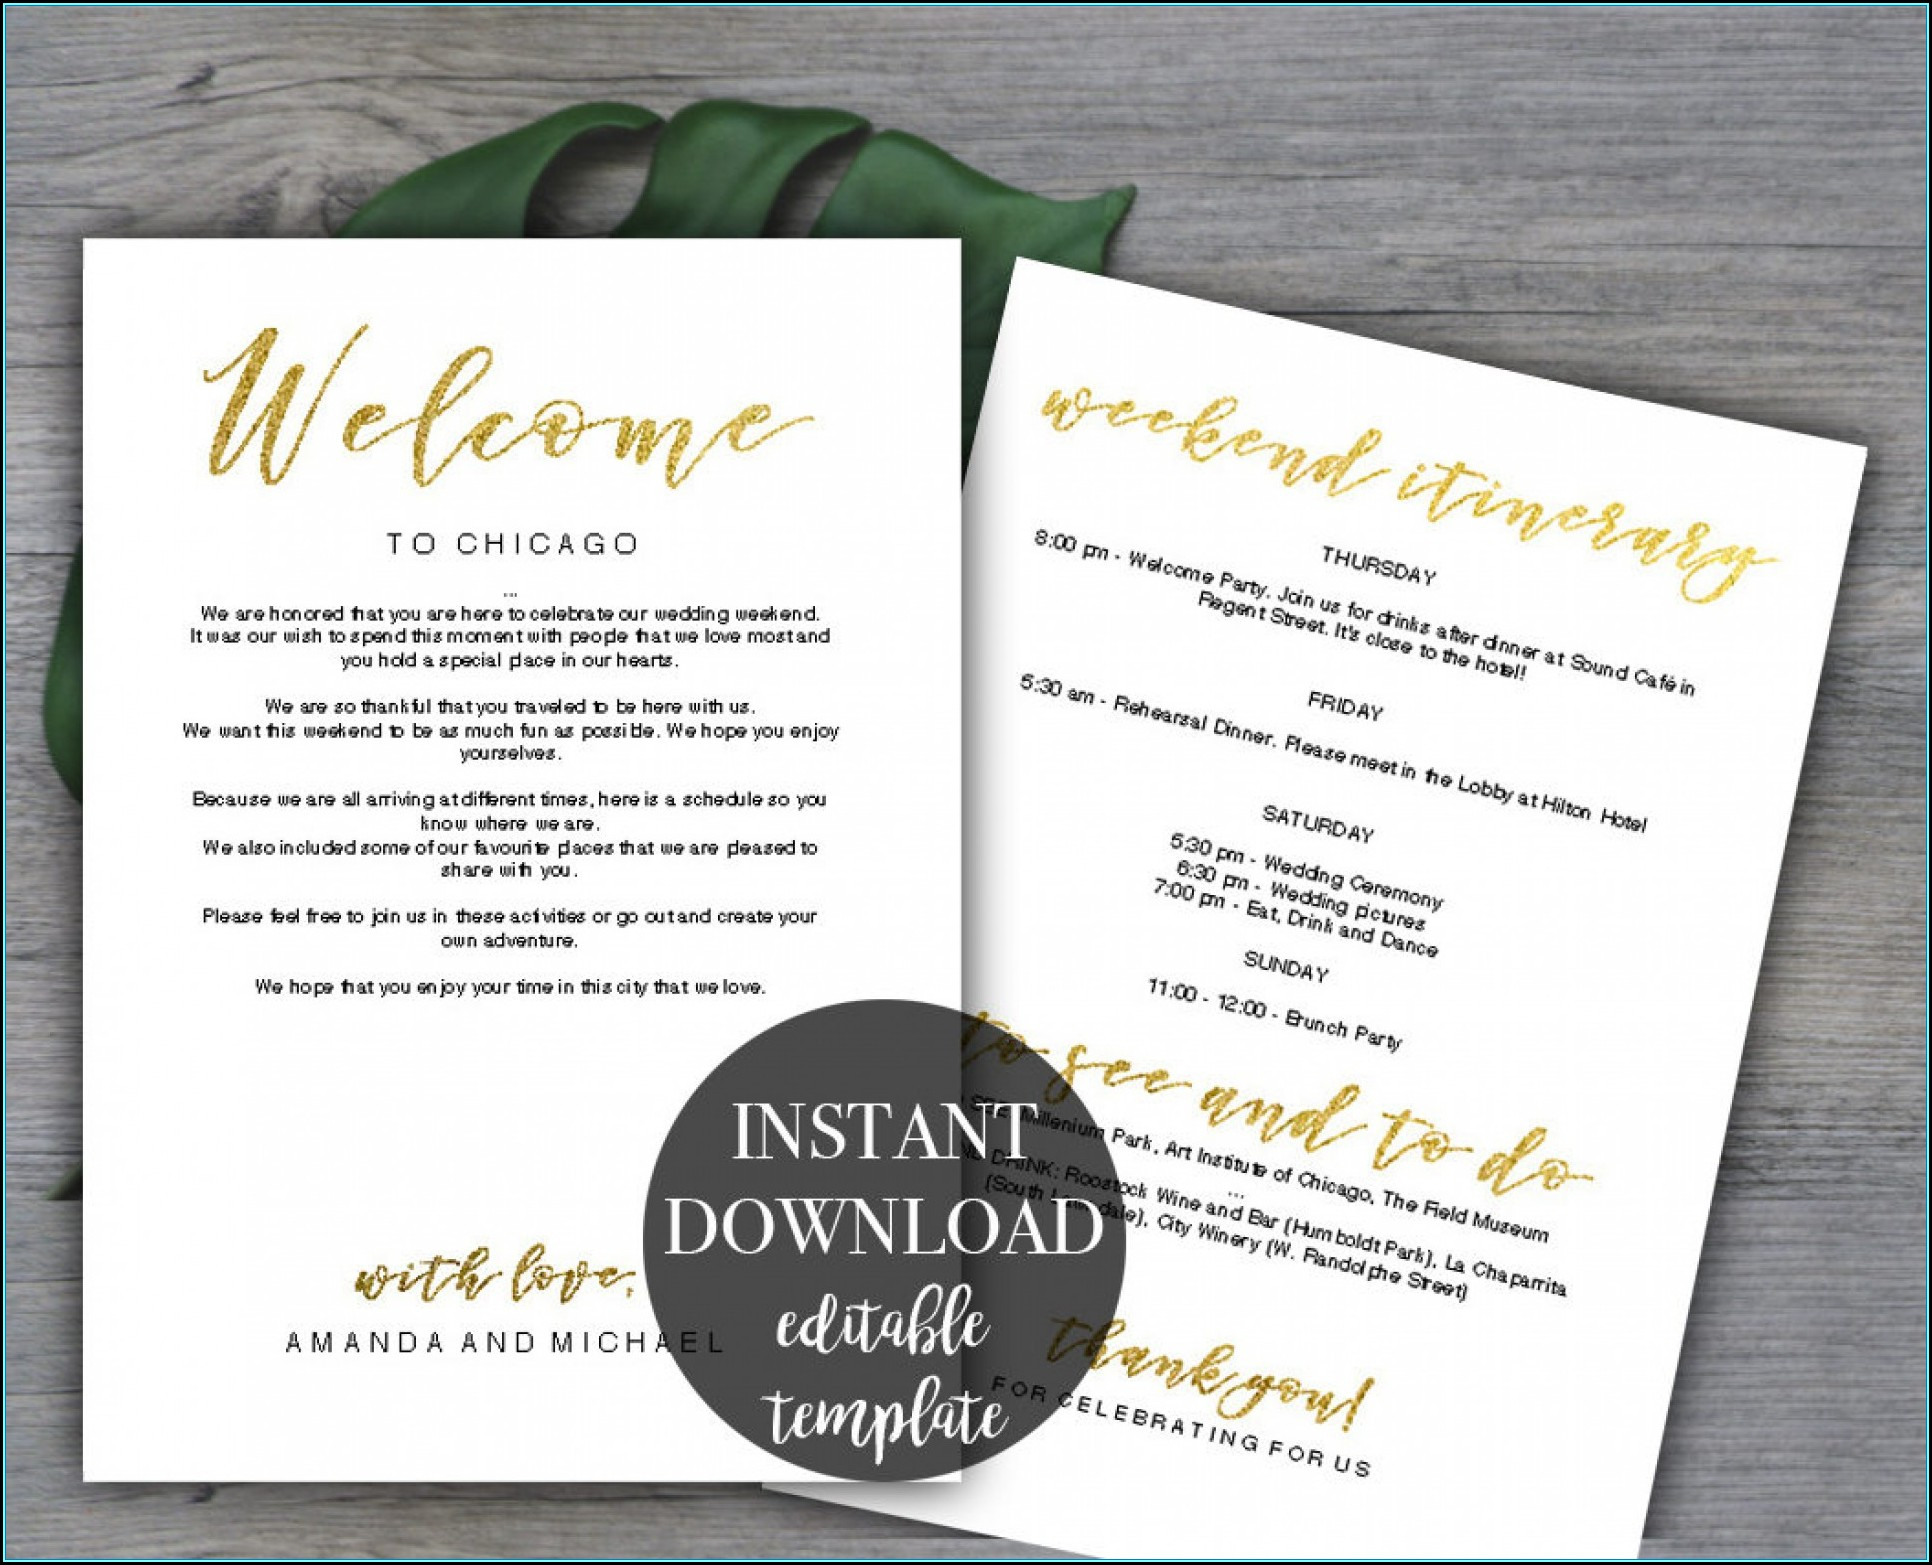 Wedding Weekend Itinerary Template Free